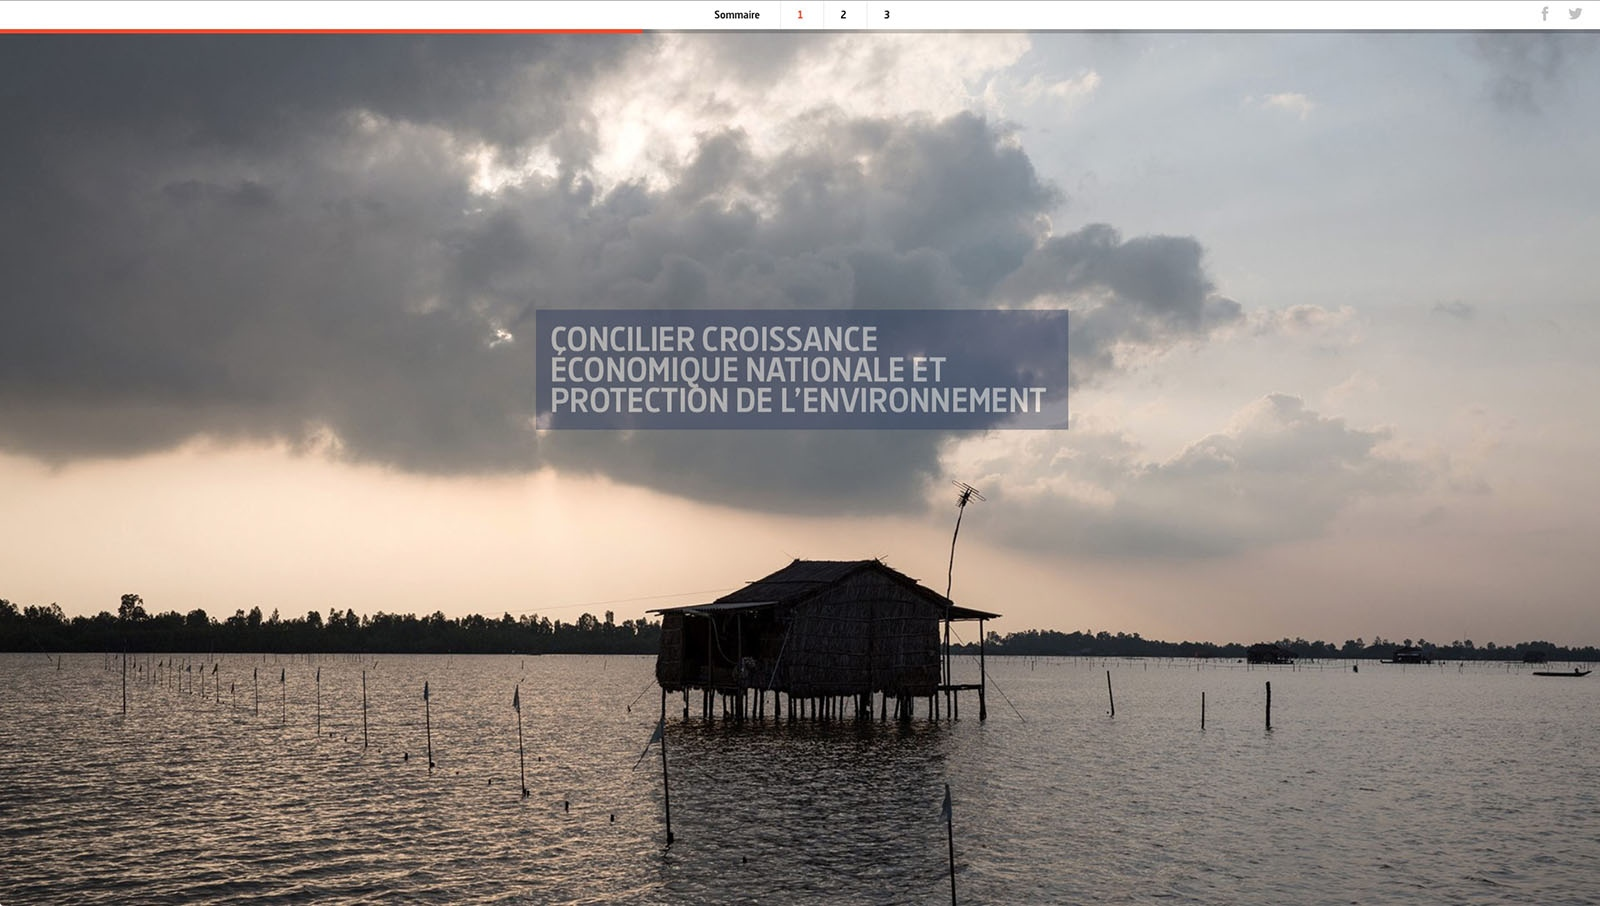 Client: ARTE - France https://www.arte.tv/sites/story/reportage/changement-climatique/#changement-climatique-la-nouvelle-guerre-du-vietnam Published: August 2018